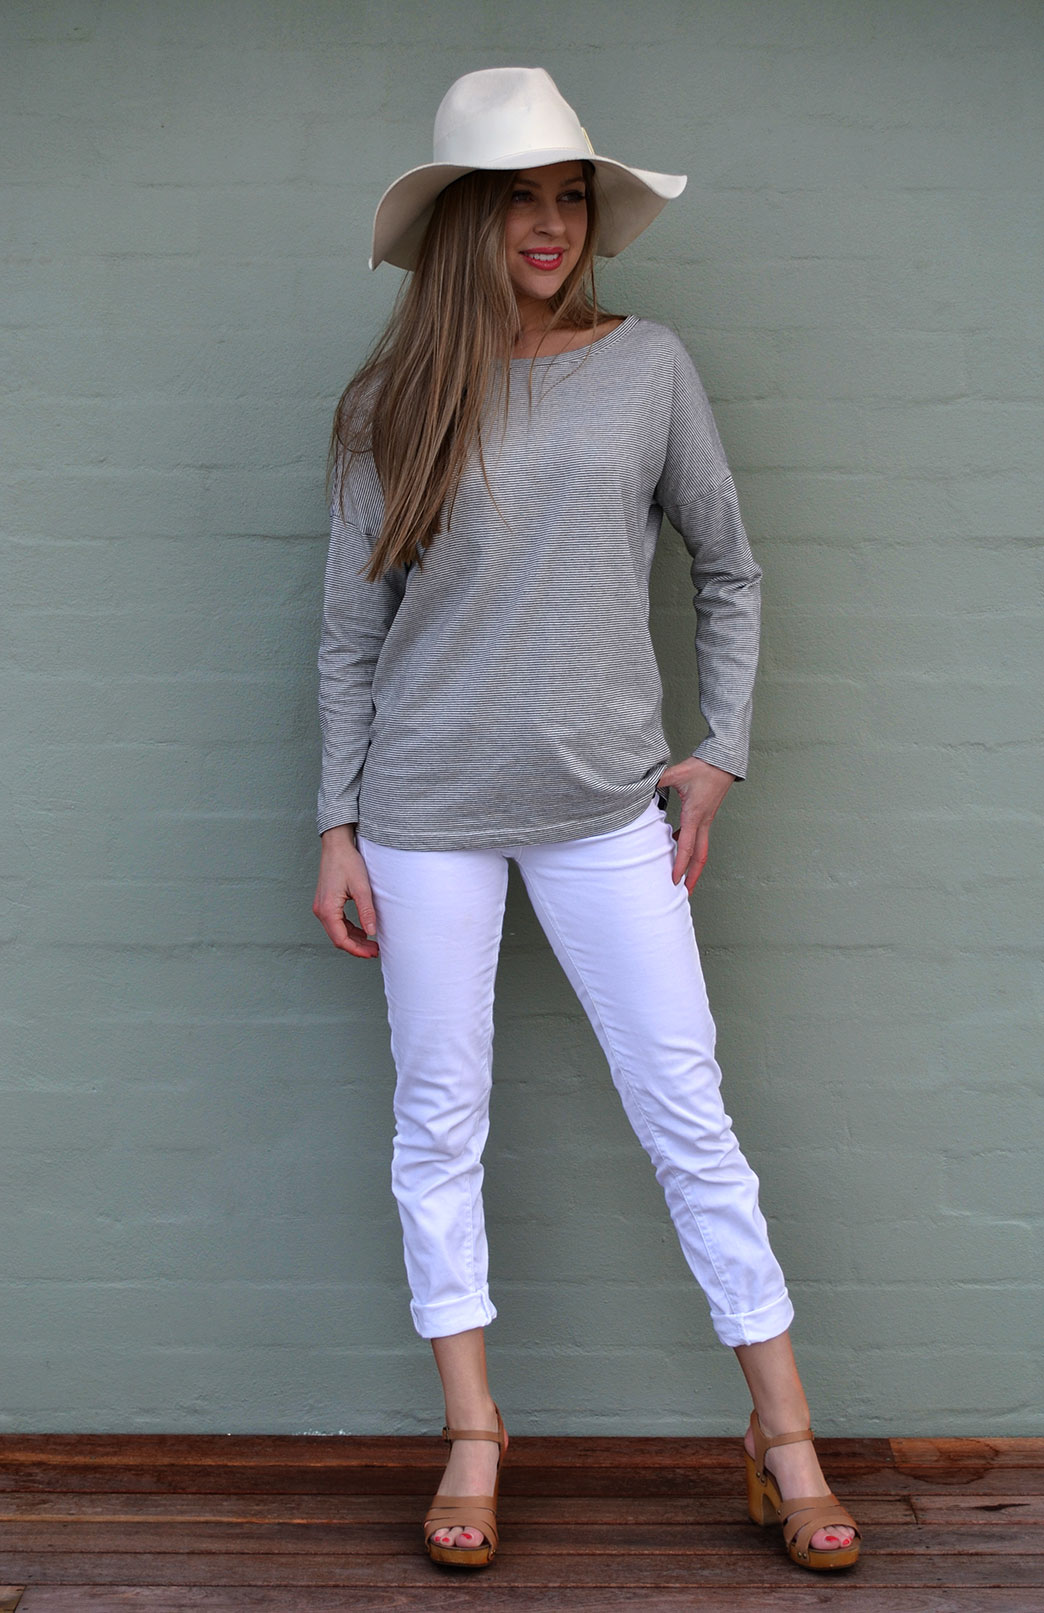 Organic Cotton Long Cruise Top - Smitten Merino Tasmania Australia